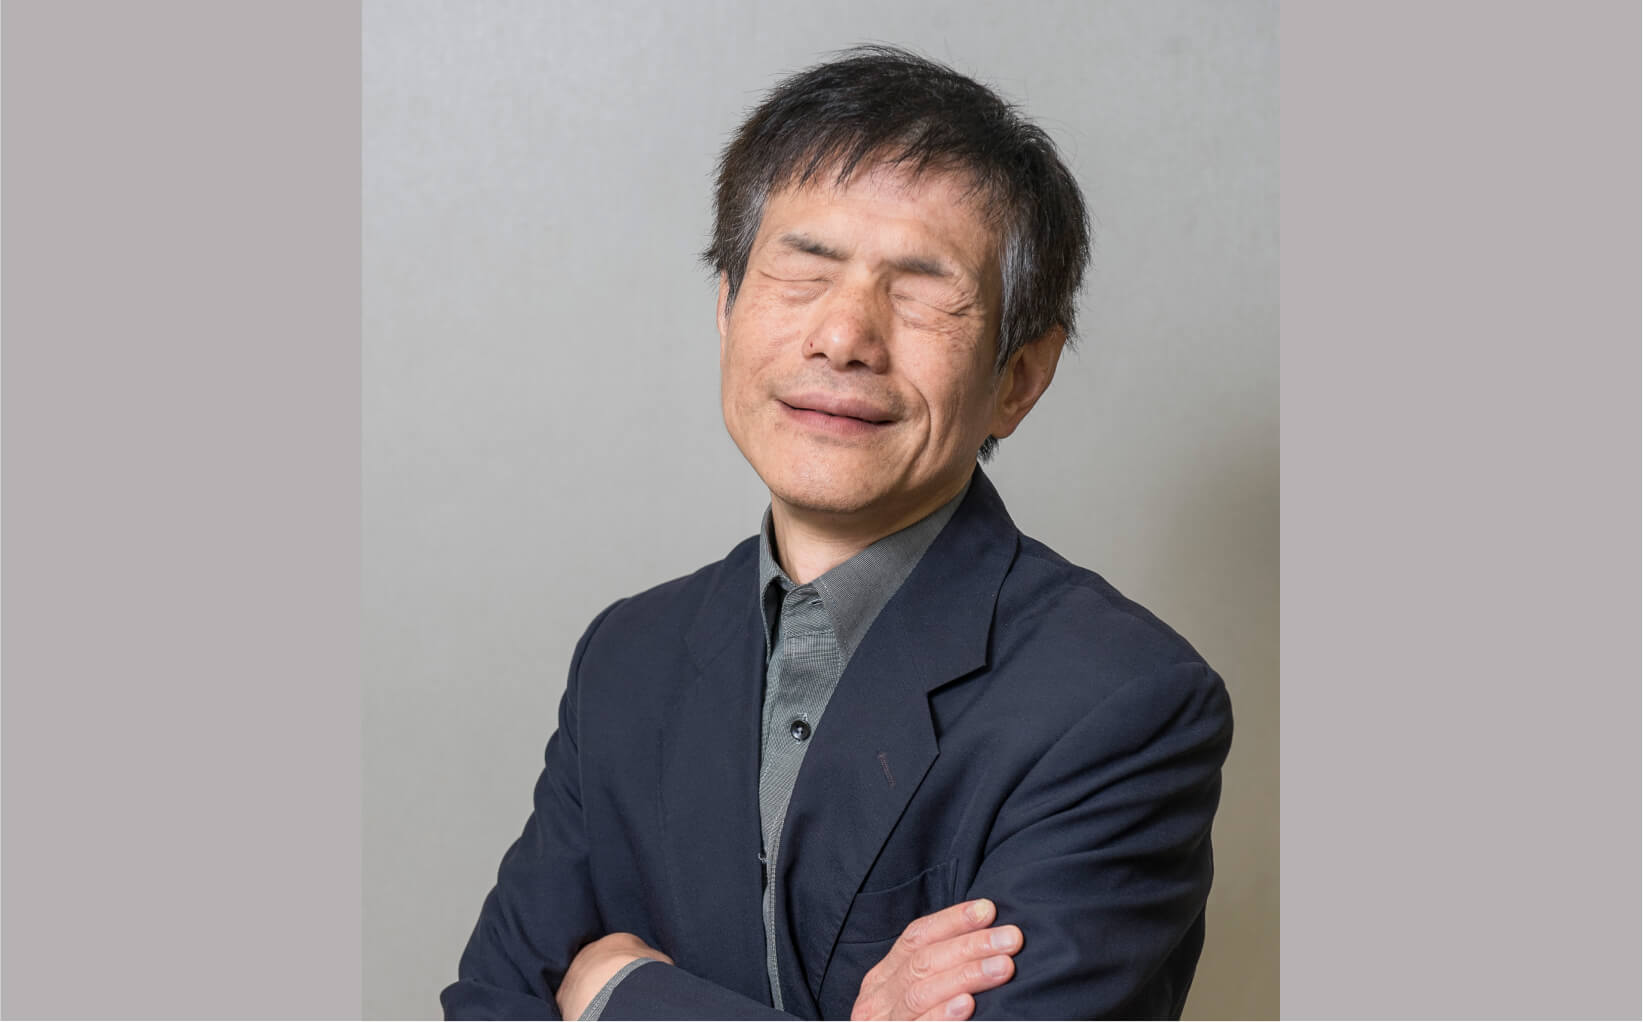 Chong Chan Yau posing with his arms crossed, wearing a shirt and a suit jacket.